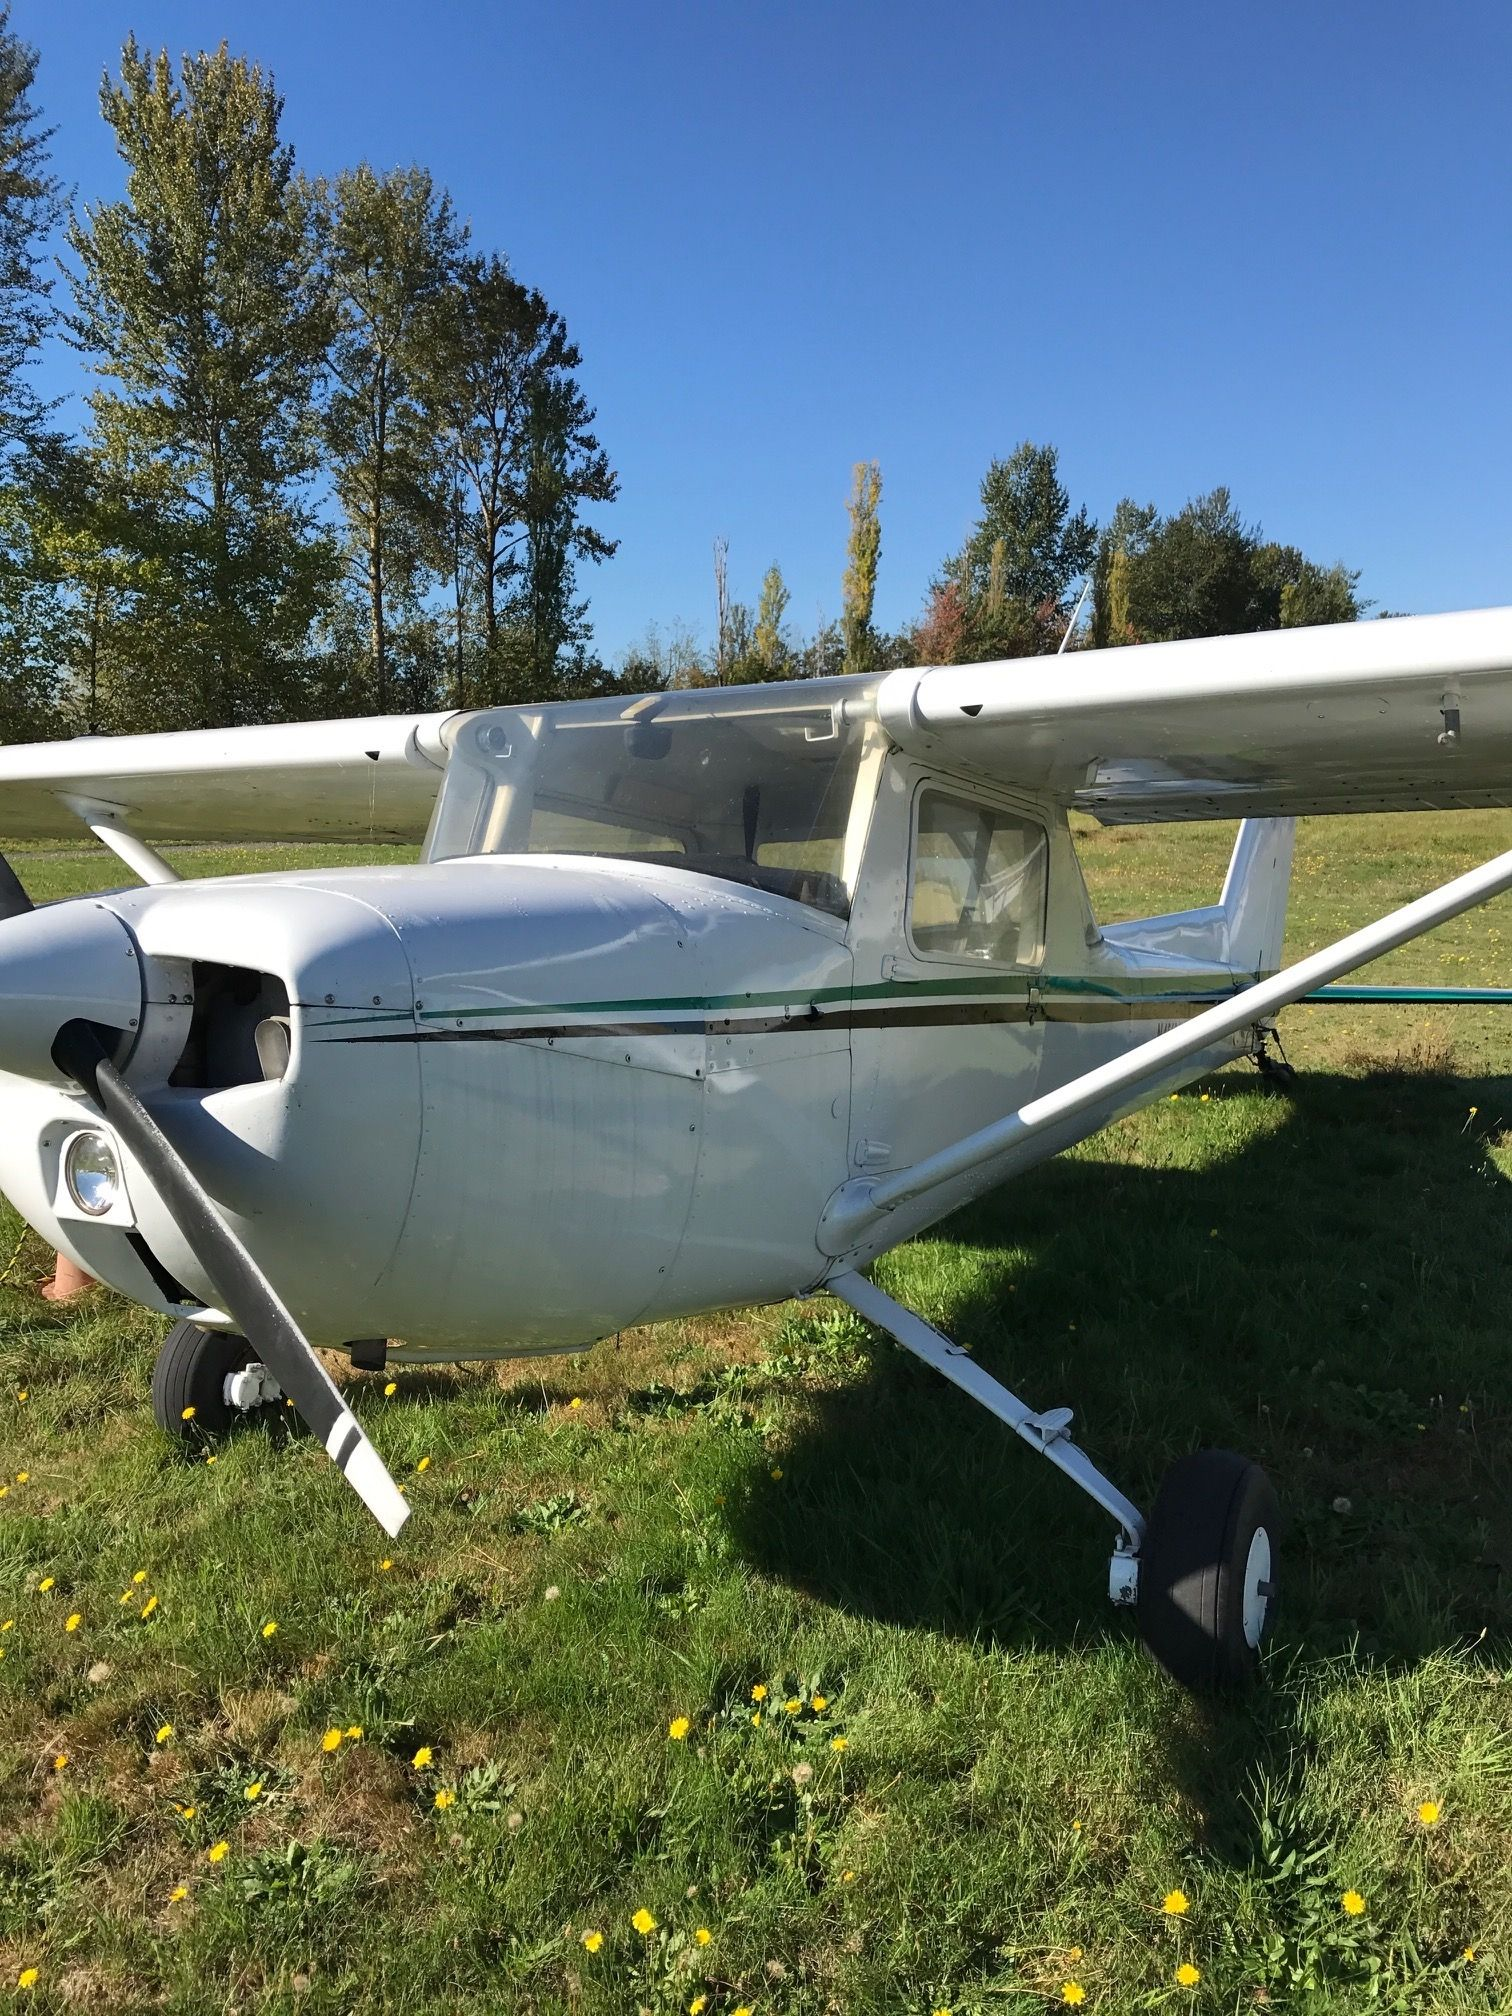 1975 Cessna 150M Taildragger for sale in (S50) Seattle, WA USA